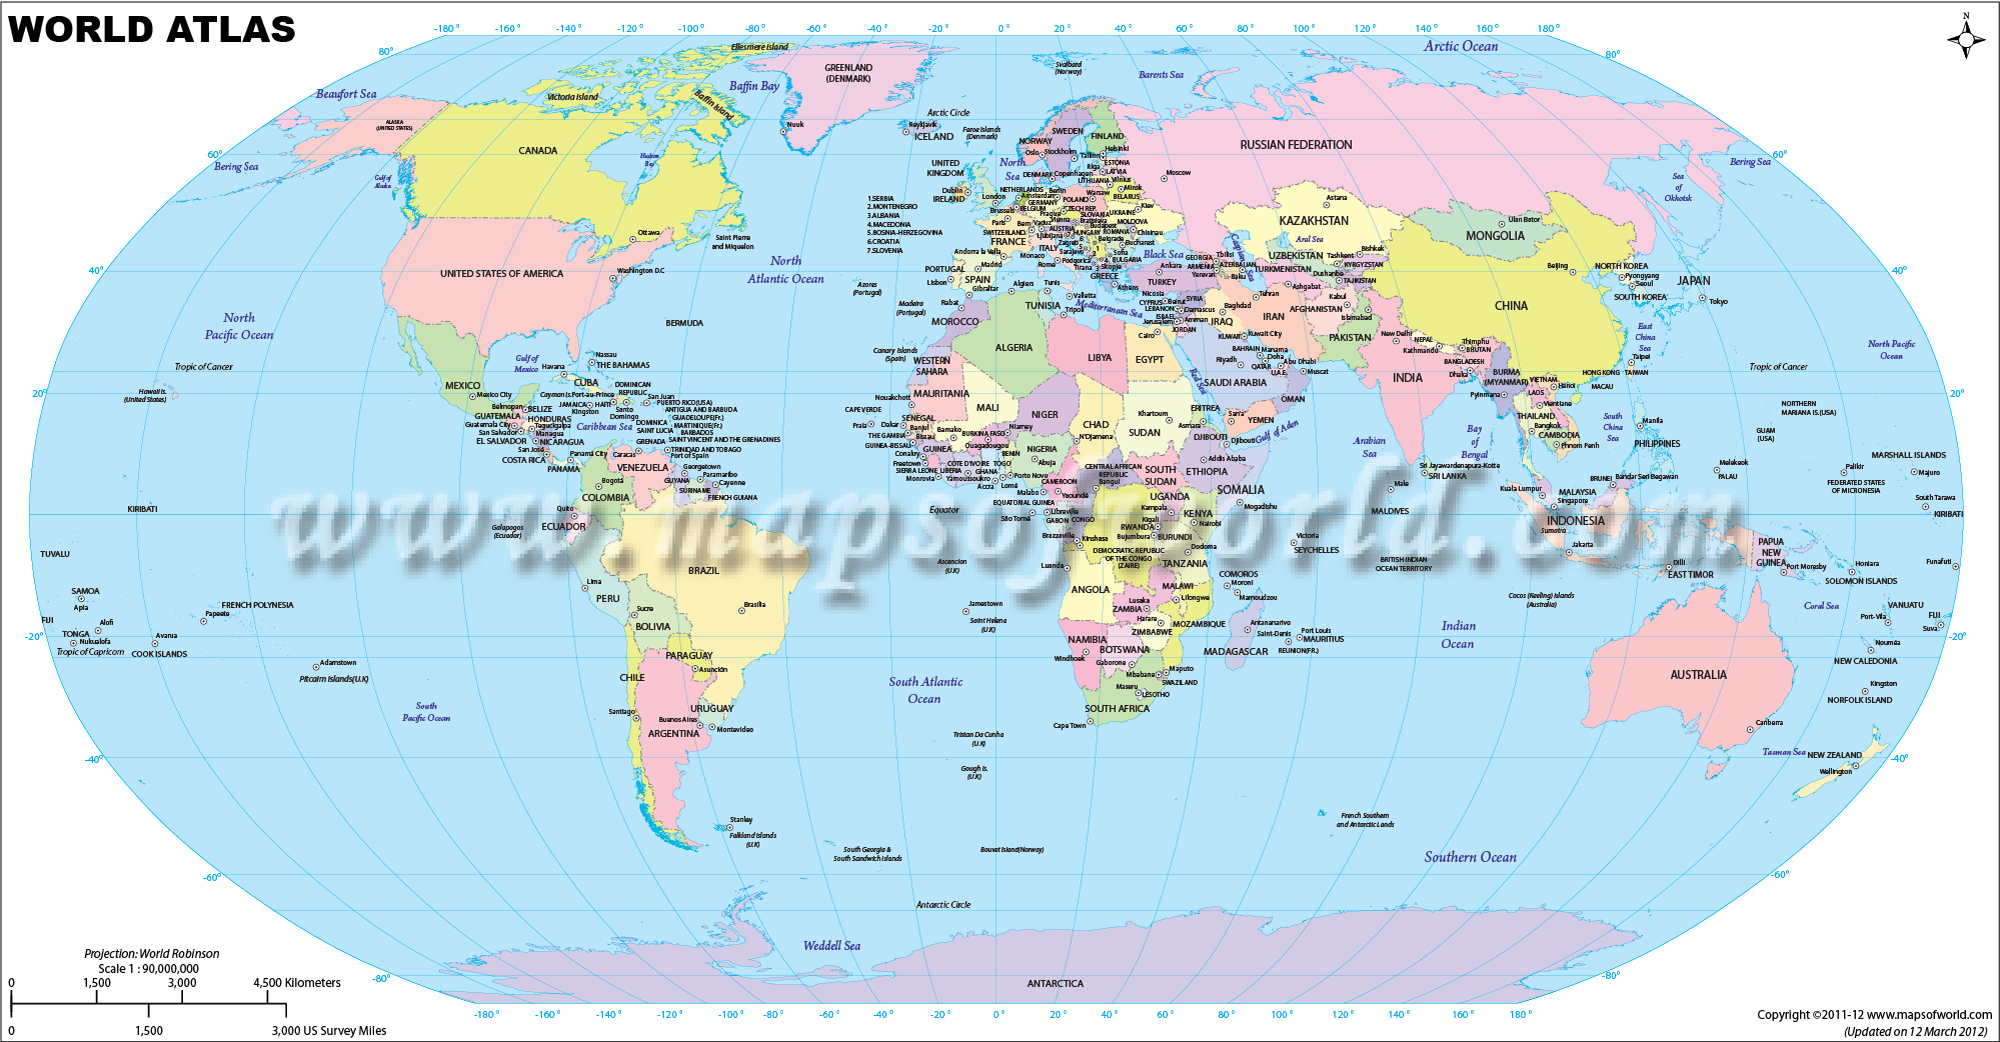 usa 50 states map quiz with World Atlas on Quiz in addition State Of New York Map With Cities also World Major Explorations additionally Louisville Kentucky Map Usa together with World Atlas.